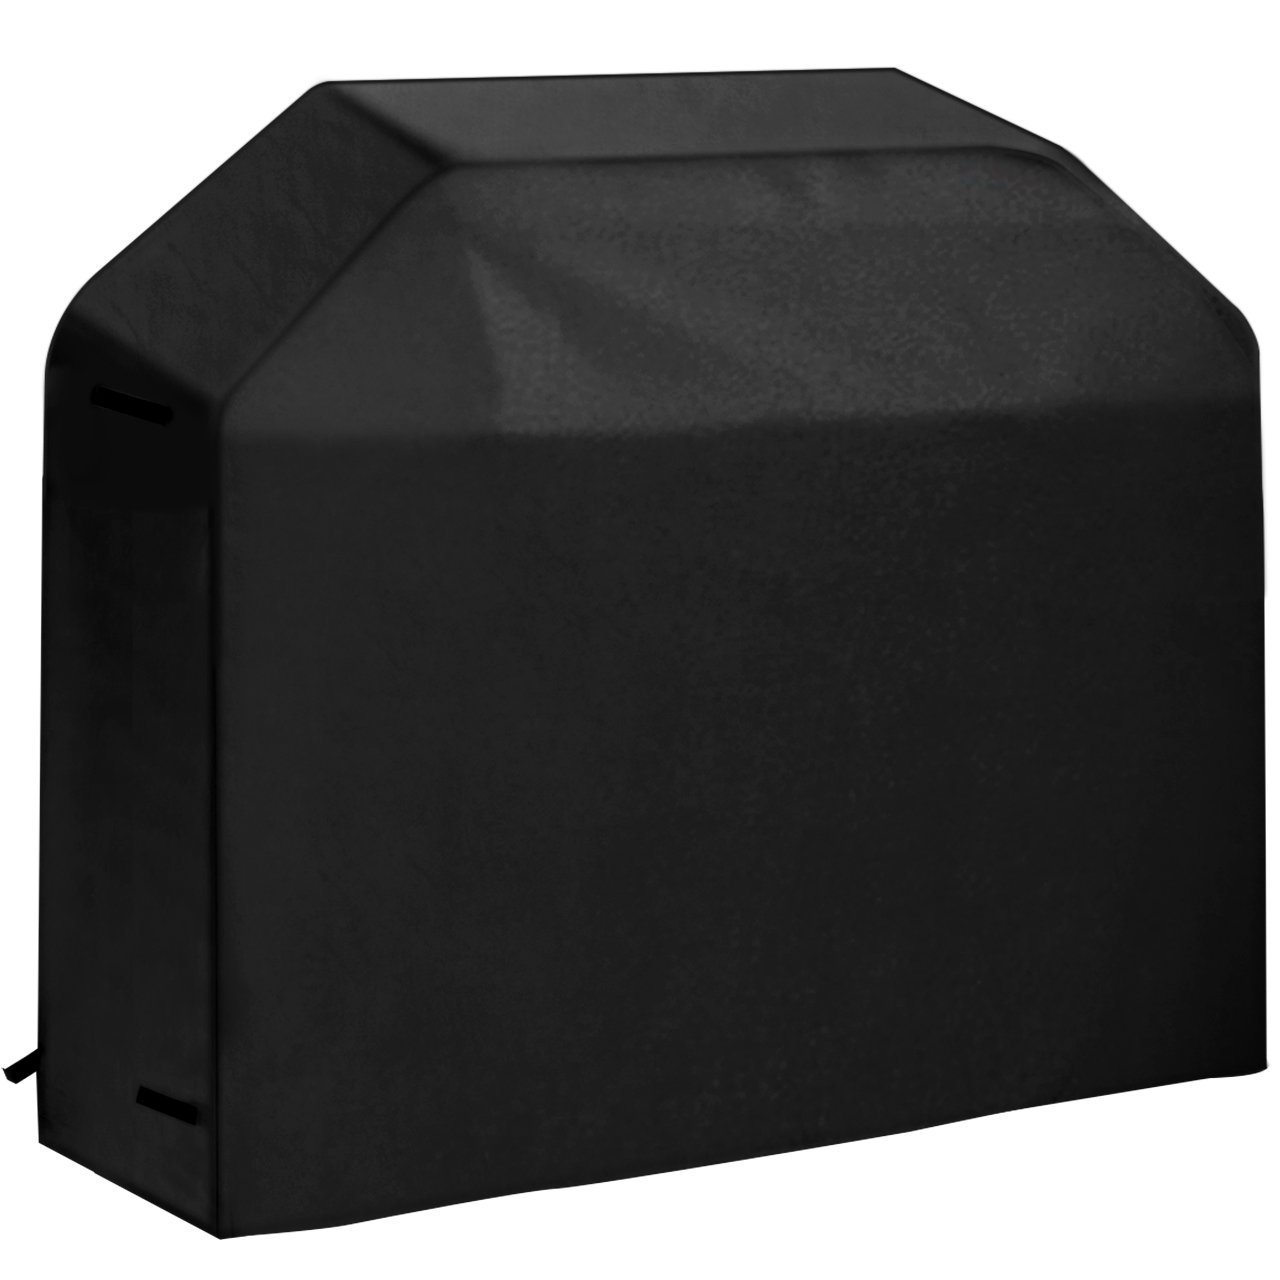 Amazon.com : Grill Cover, 58-inch 420D Heavy Duty Barbecue Gas Covers Waterproof BBQ Grill Cover for Weber, Holland, Jenn Air, Brinkmann and Char Broil ...